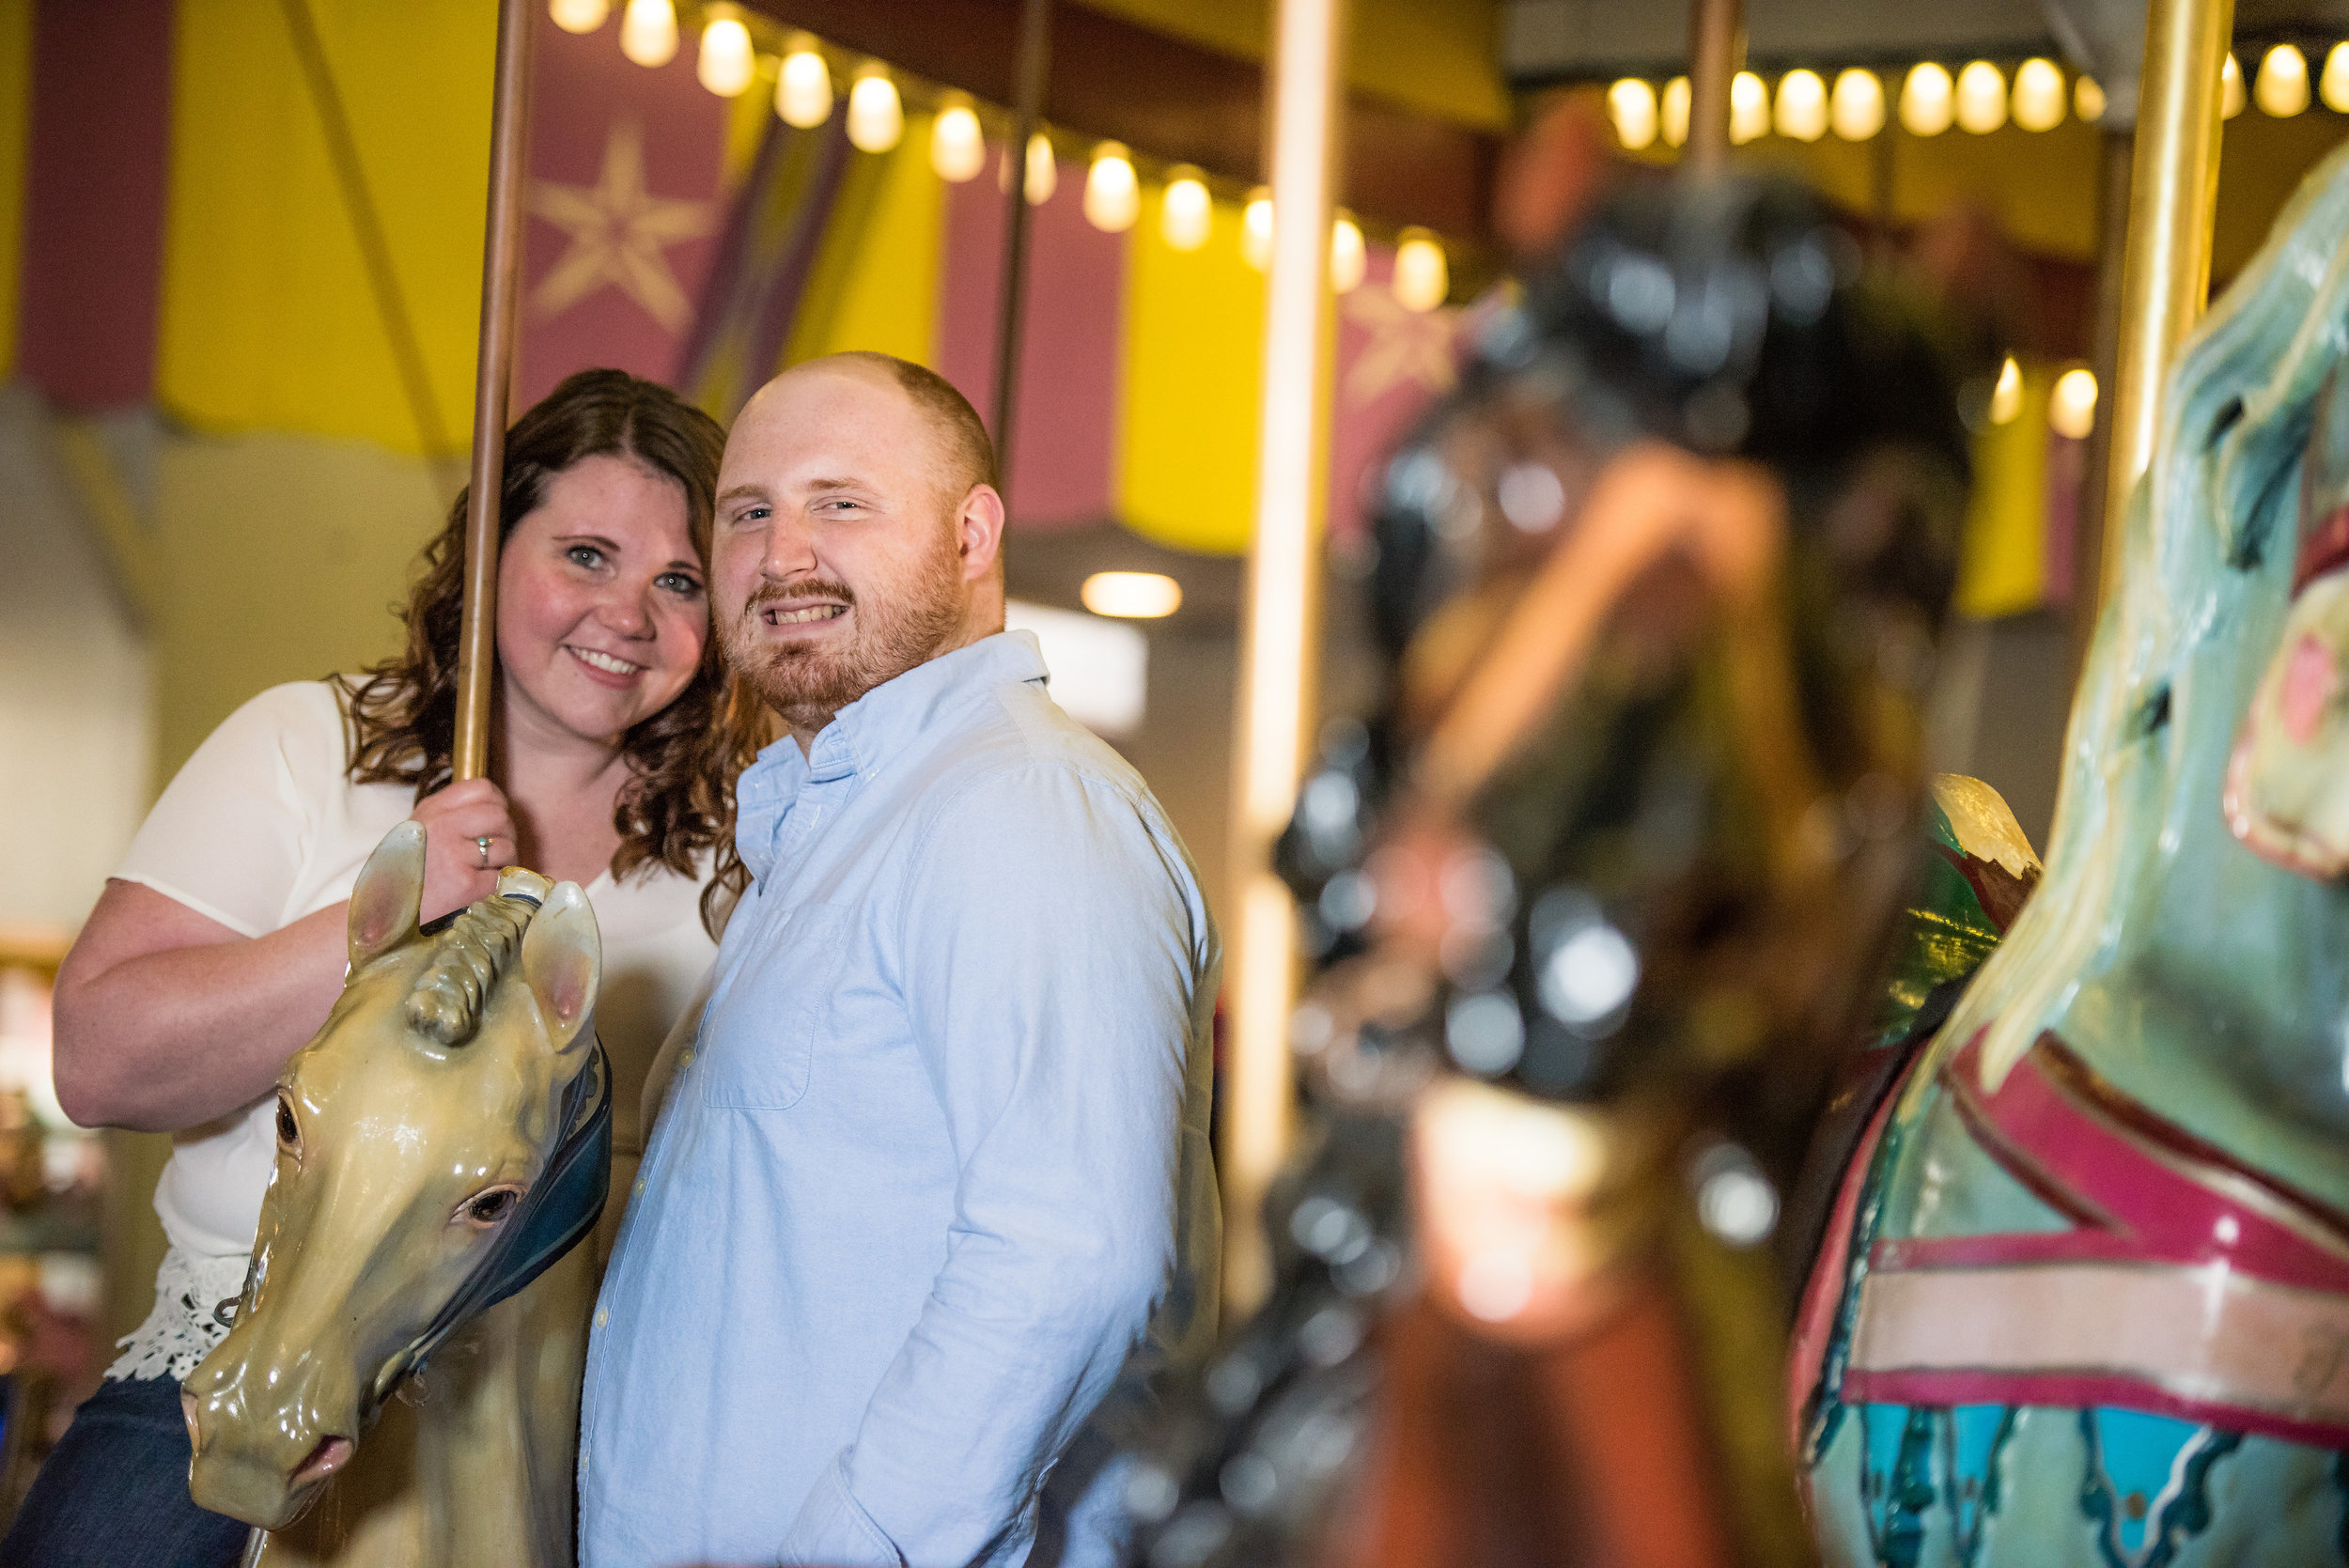 Seaside, NJ Boardwalk & Beach Engagement Photos Jake & Jessica 6